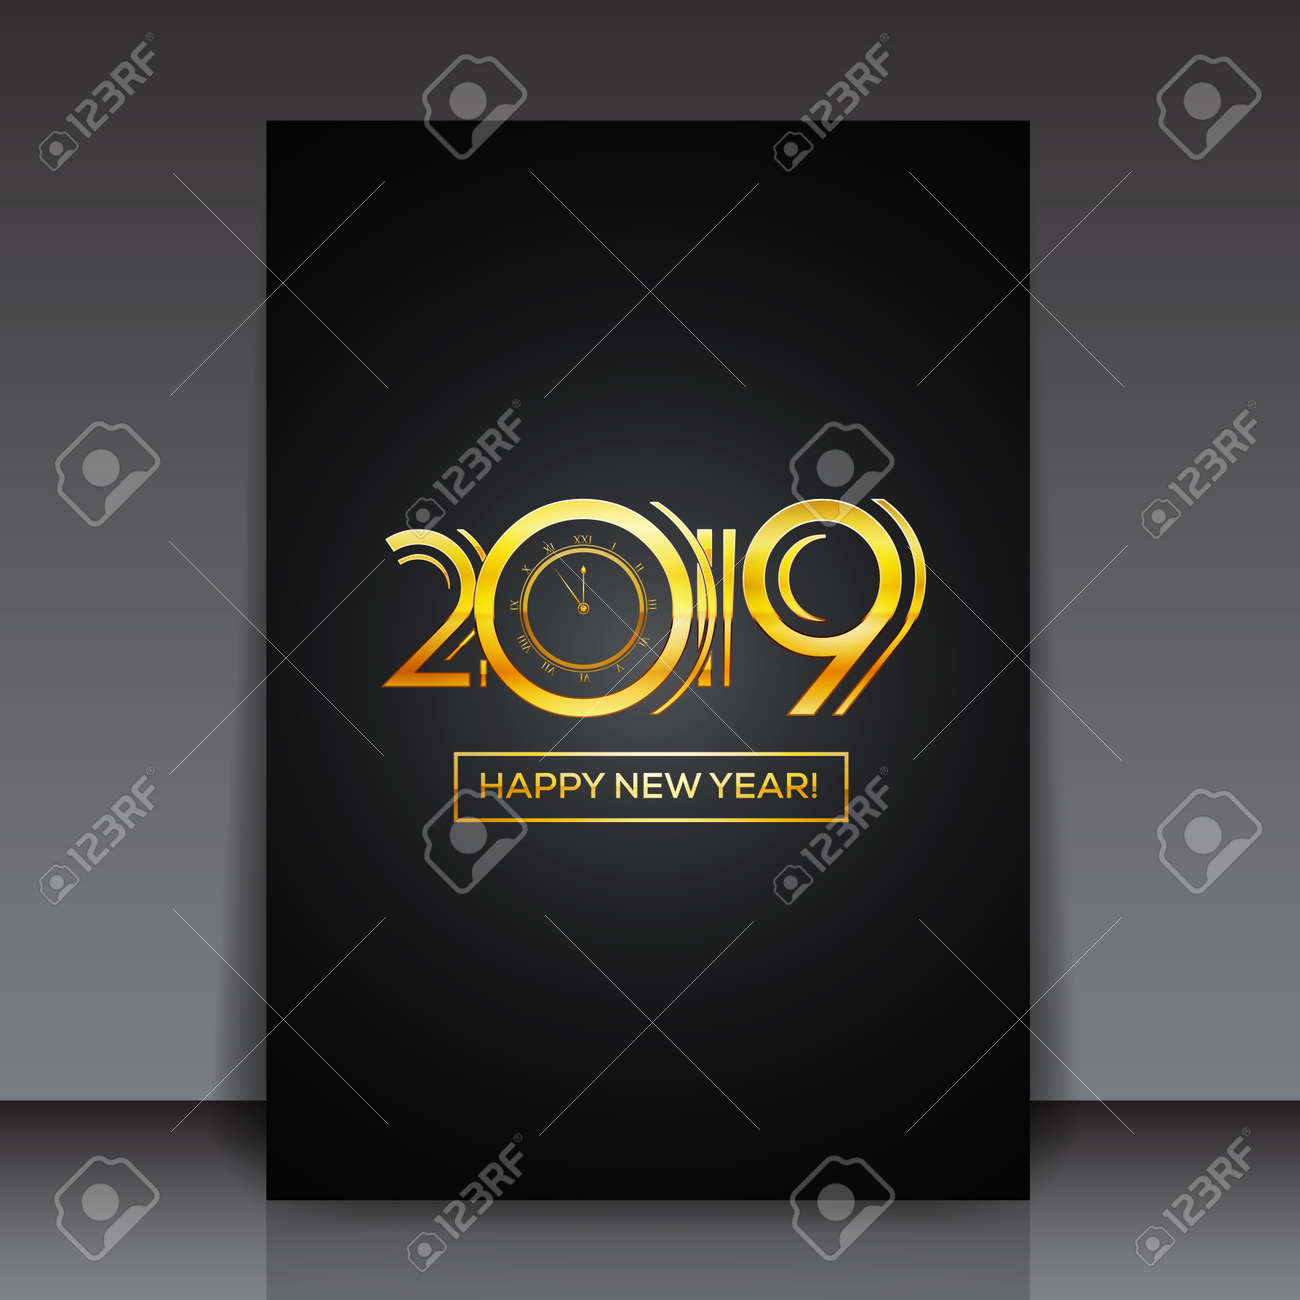 Happy New Year 2019 Greeting Card Or Flyer Template Design